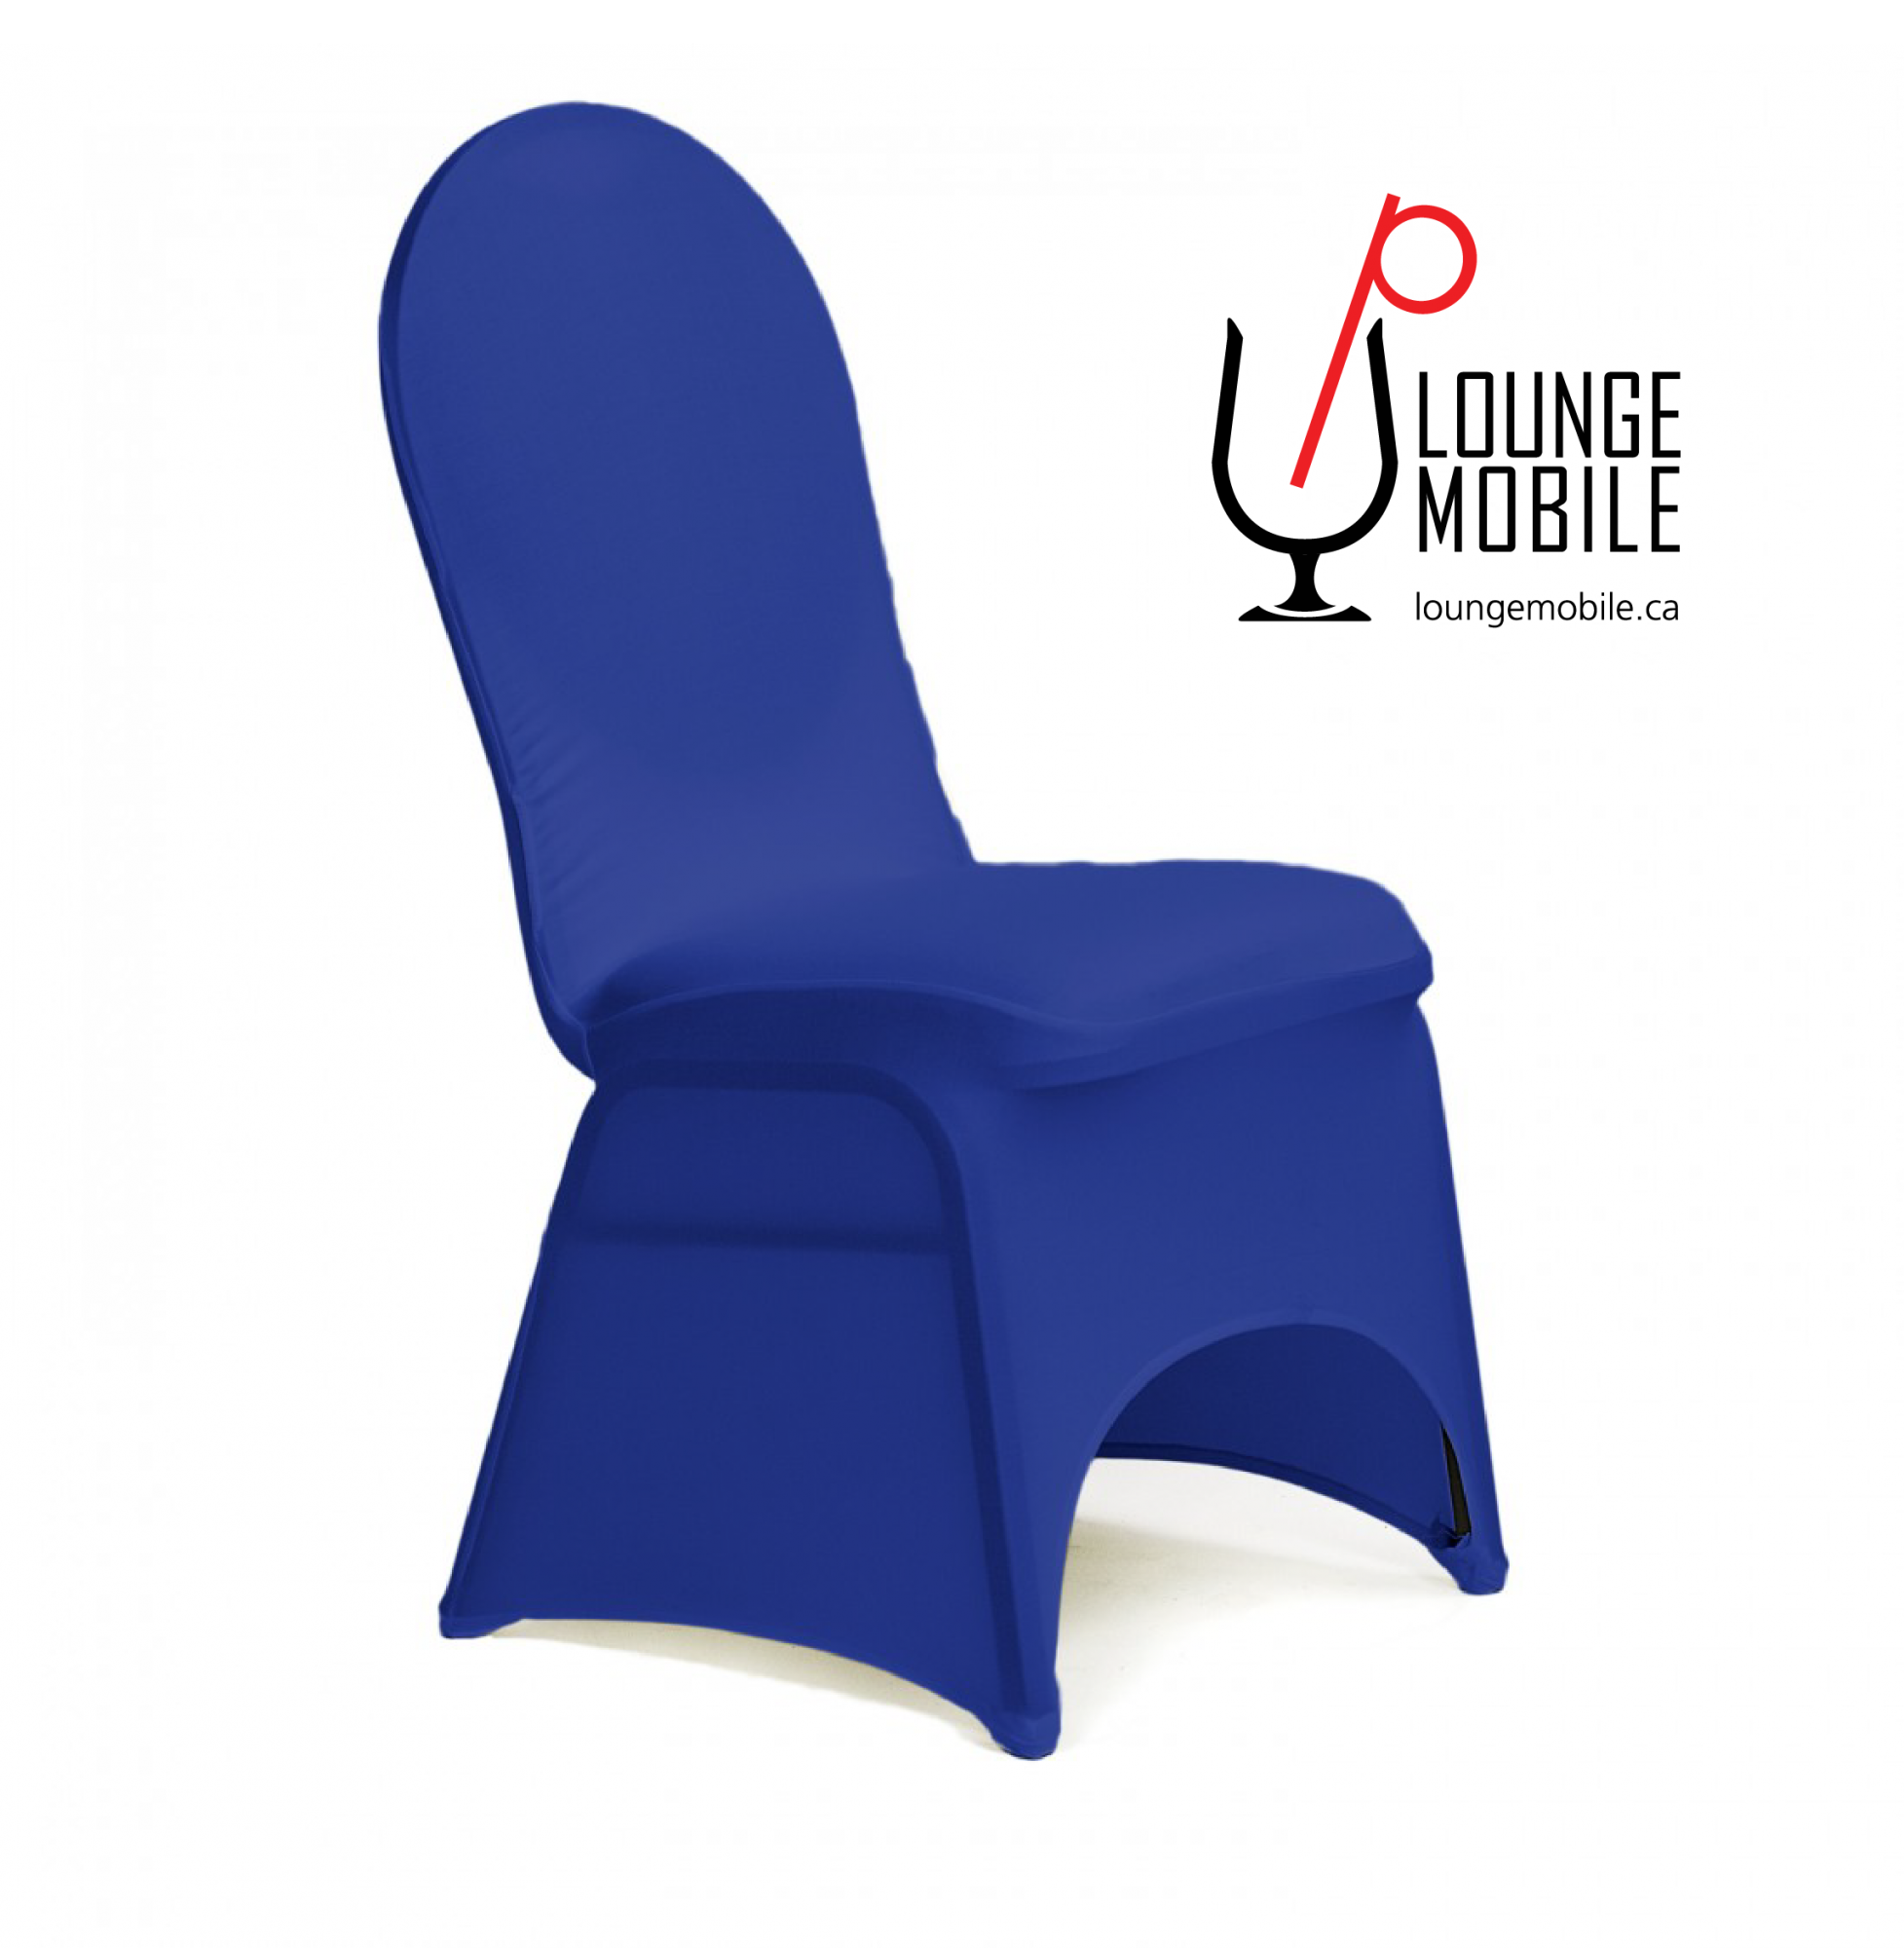 housse de chaise lycra bleu royal d coration les productions c l brason site officiel. Black Bedroom Furniture Sets. Home Design Ideas